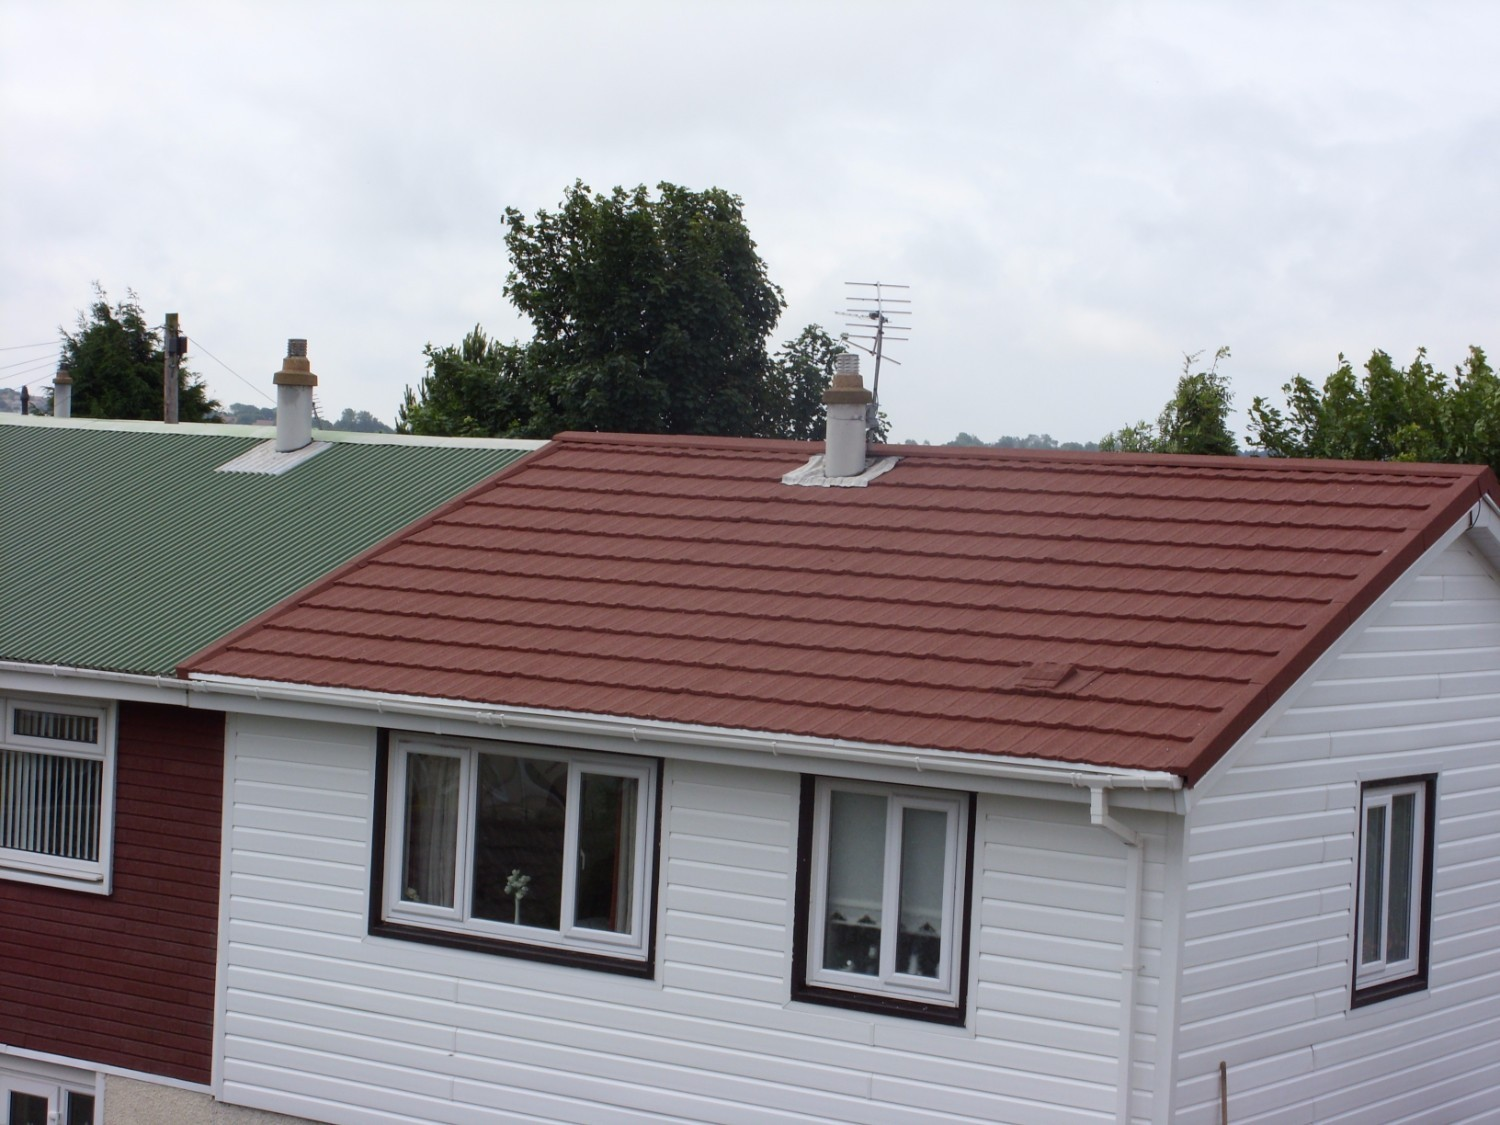 Lightweight Metal Roof Tiles on Houses